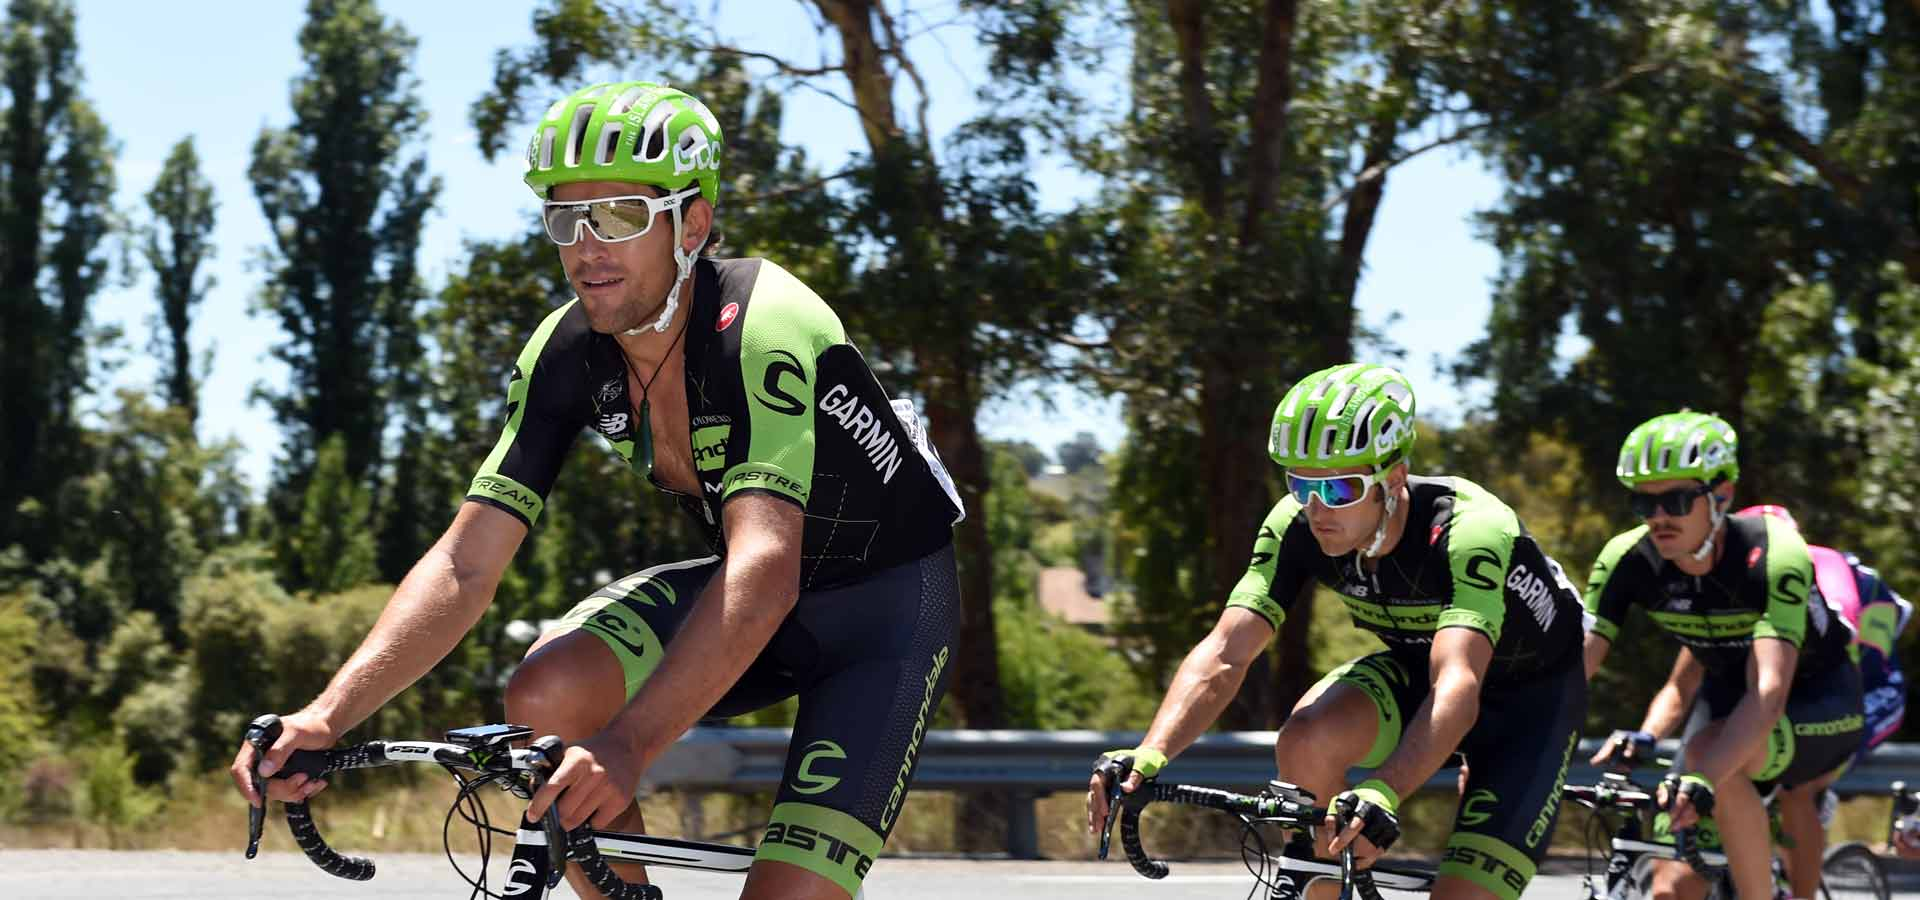 2015 Cannondale-Garmin Pro Cycling Team